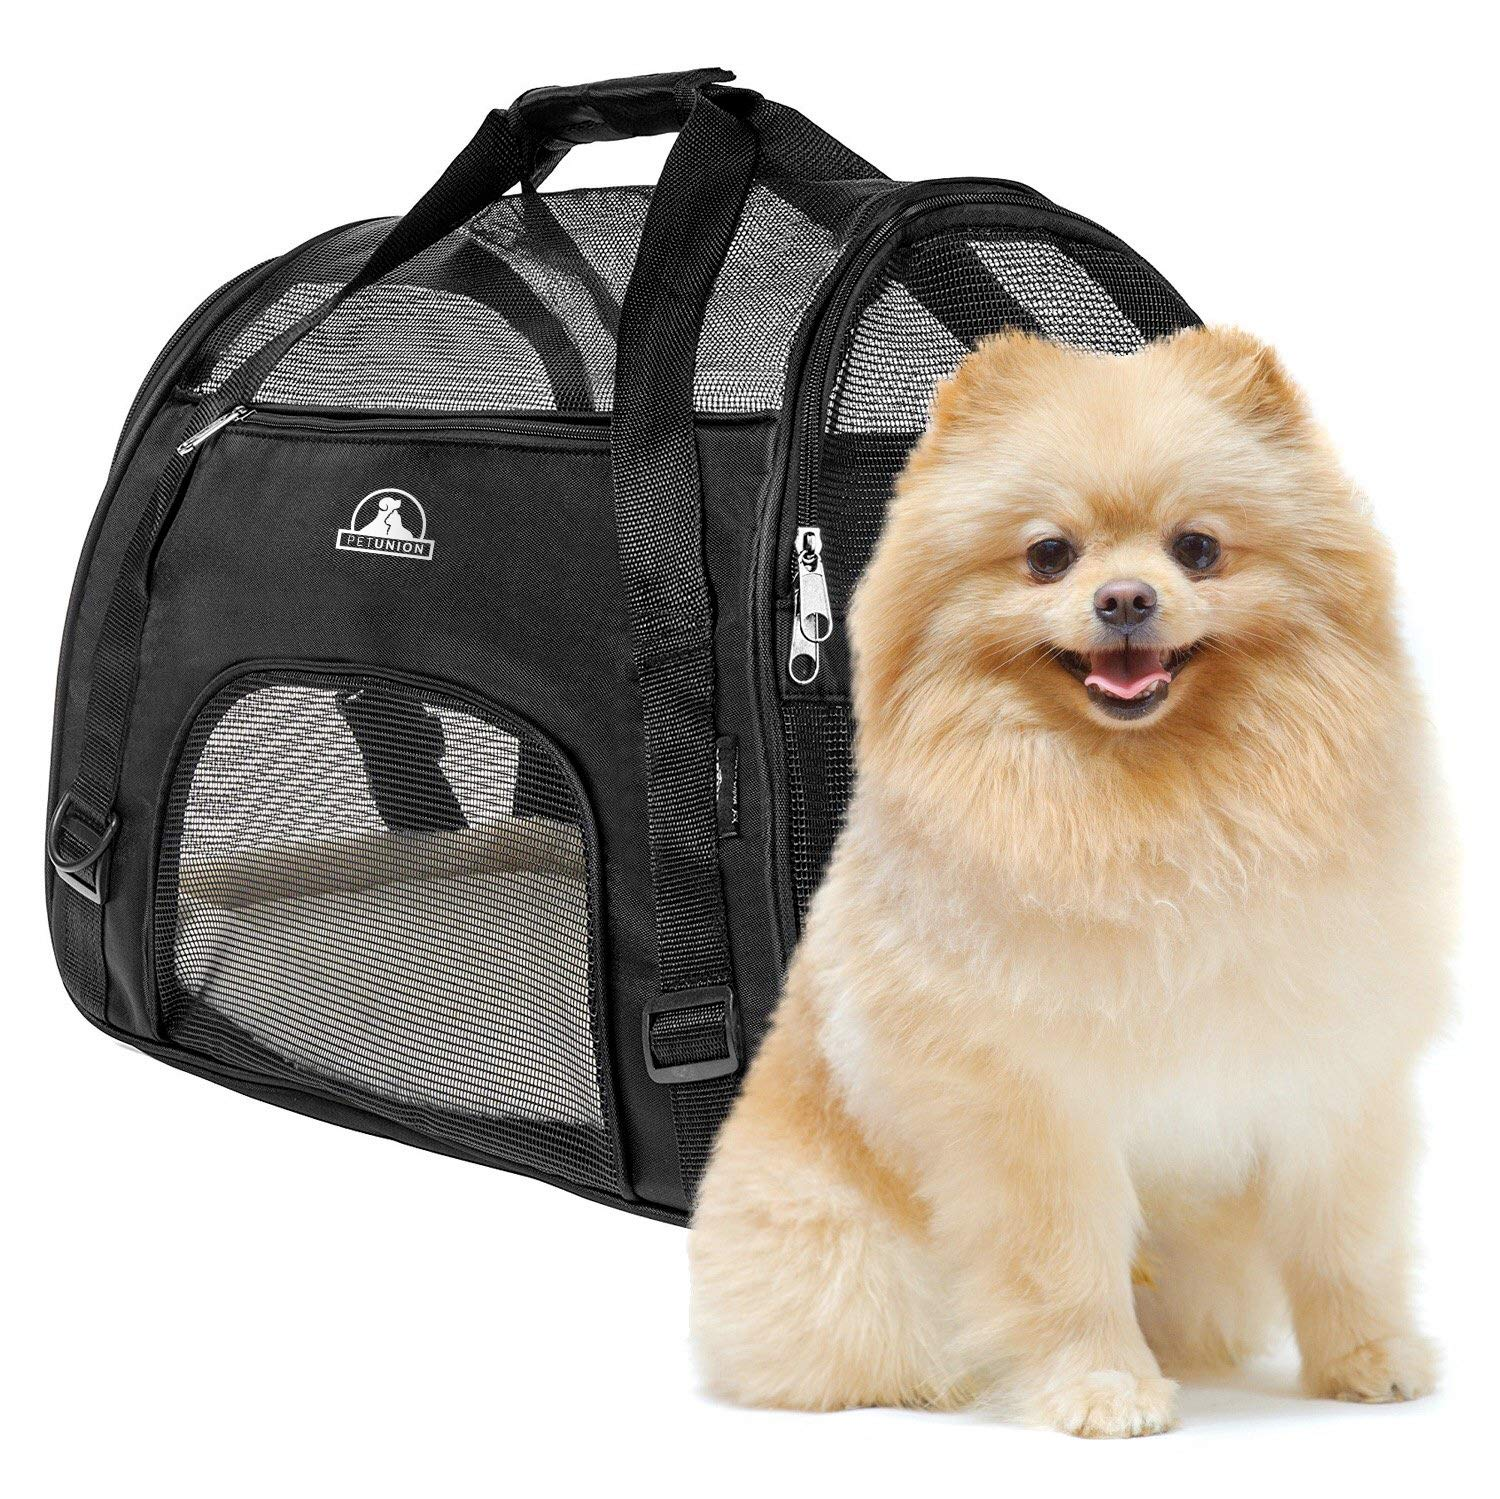 Pet Union Pet Carrier for Small Dogs, Cats, Puppies, Kittens, Pets (up to 10 lbs) Collapsible, Travel Friendly, Cozy and Soft Dog Bed, Carry Your Pet Safely and Comfortably (16.9 x 8.3 x 11 Inch) by Pet Union